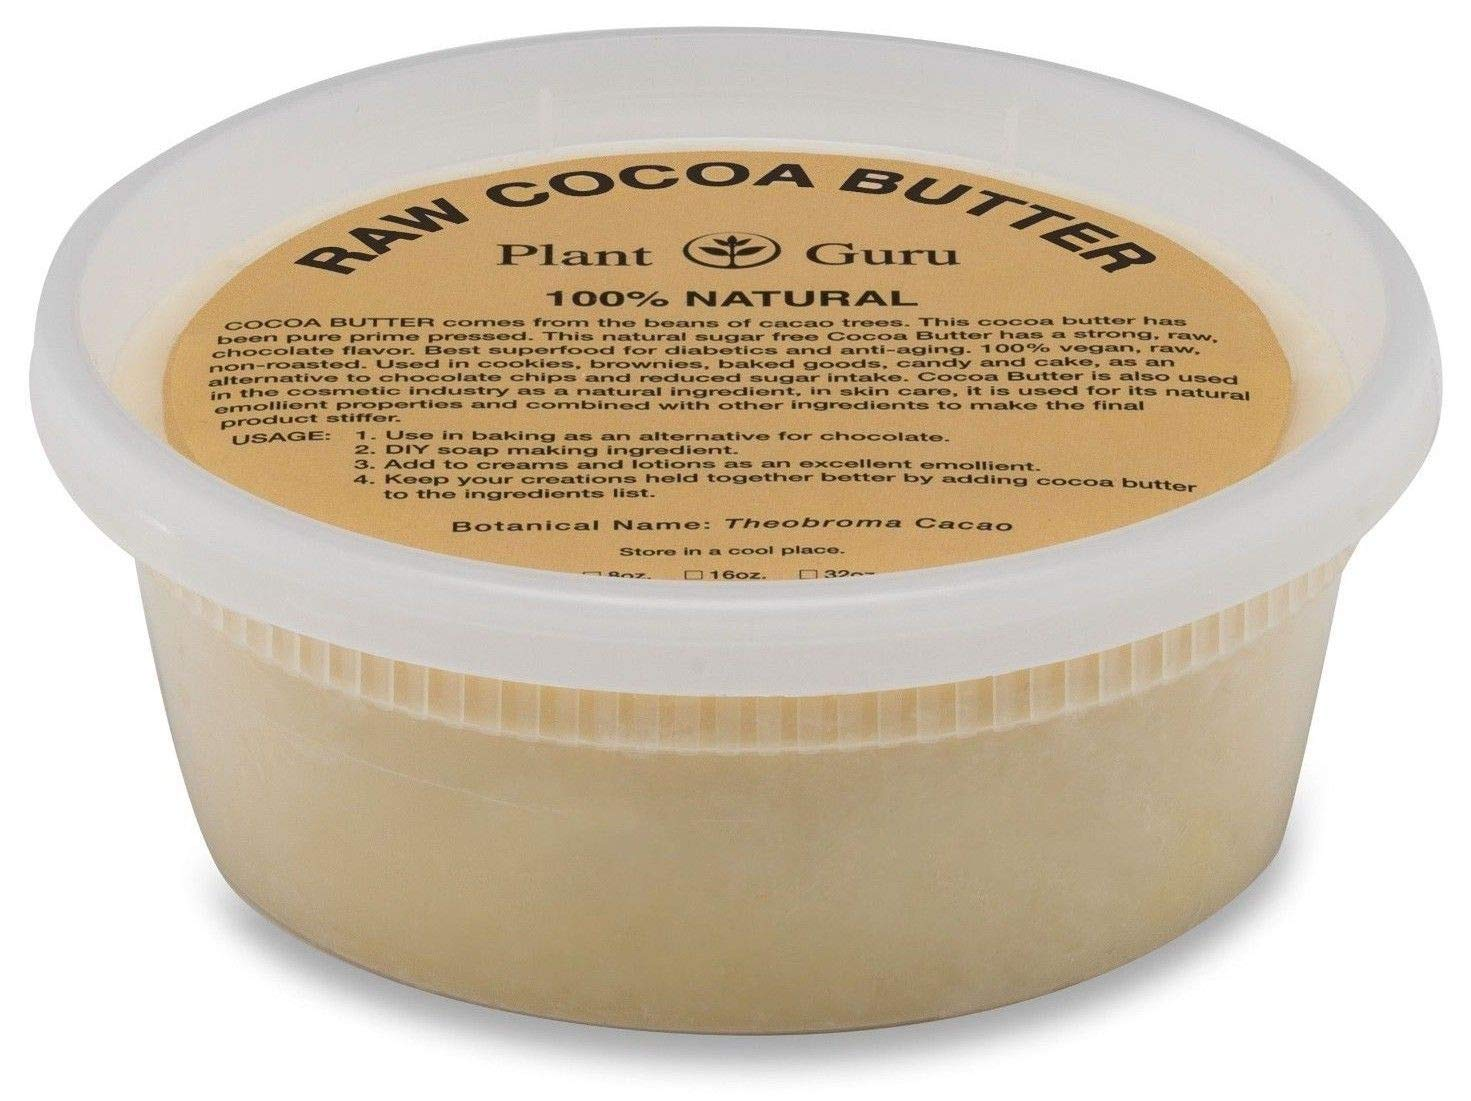 Raw Cocoa Butter 8 oz Pure 100% Unrefined FOOD GRADE Cacao Highest Quality Arriba Nacional Bean, Bulk Rich Chocolate Aroma For Lip Balms, Stretch Marks, DIY Base for Body Butters & Soap Making Plant Guru